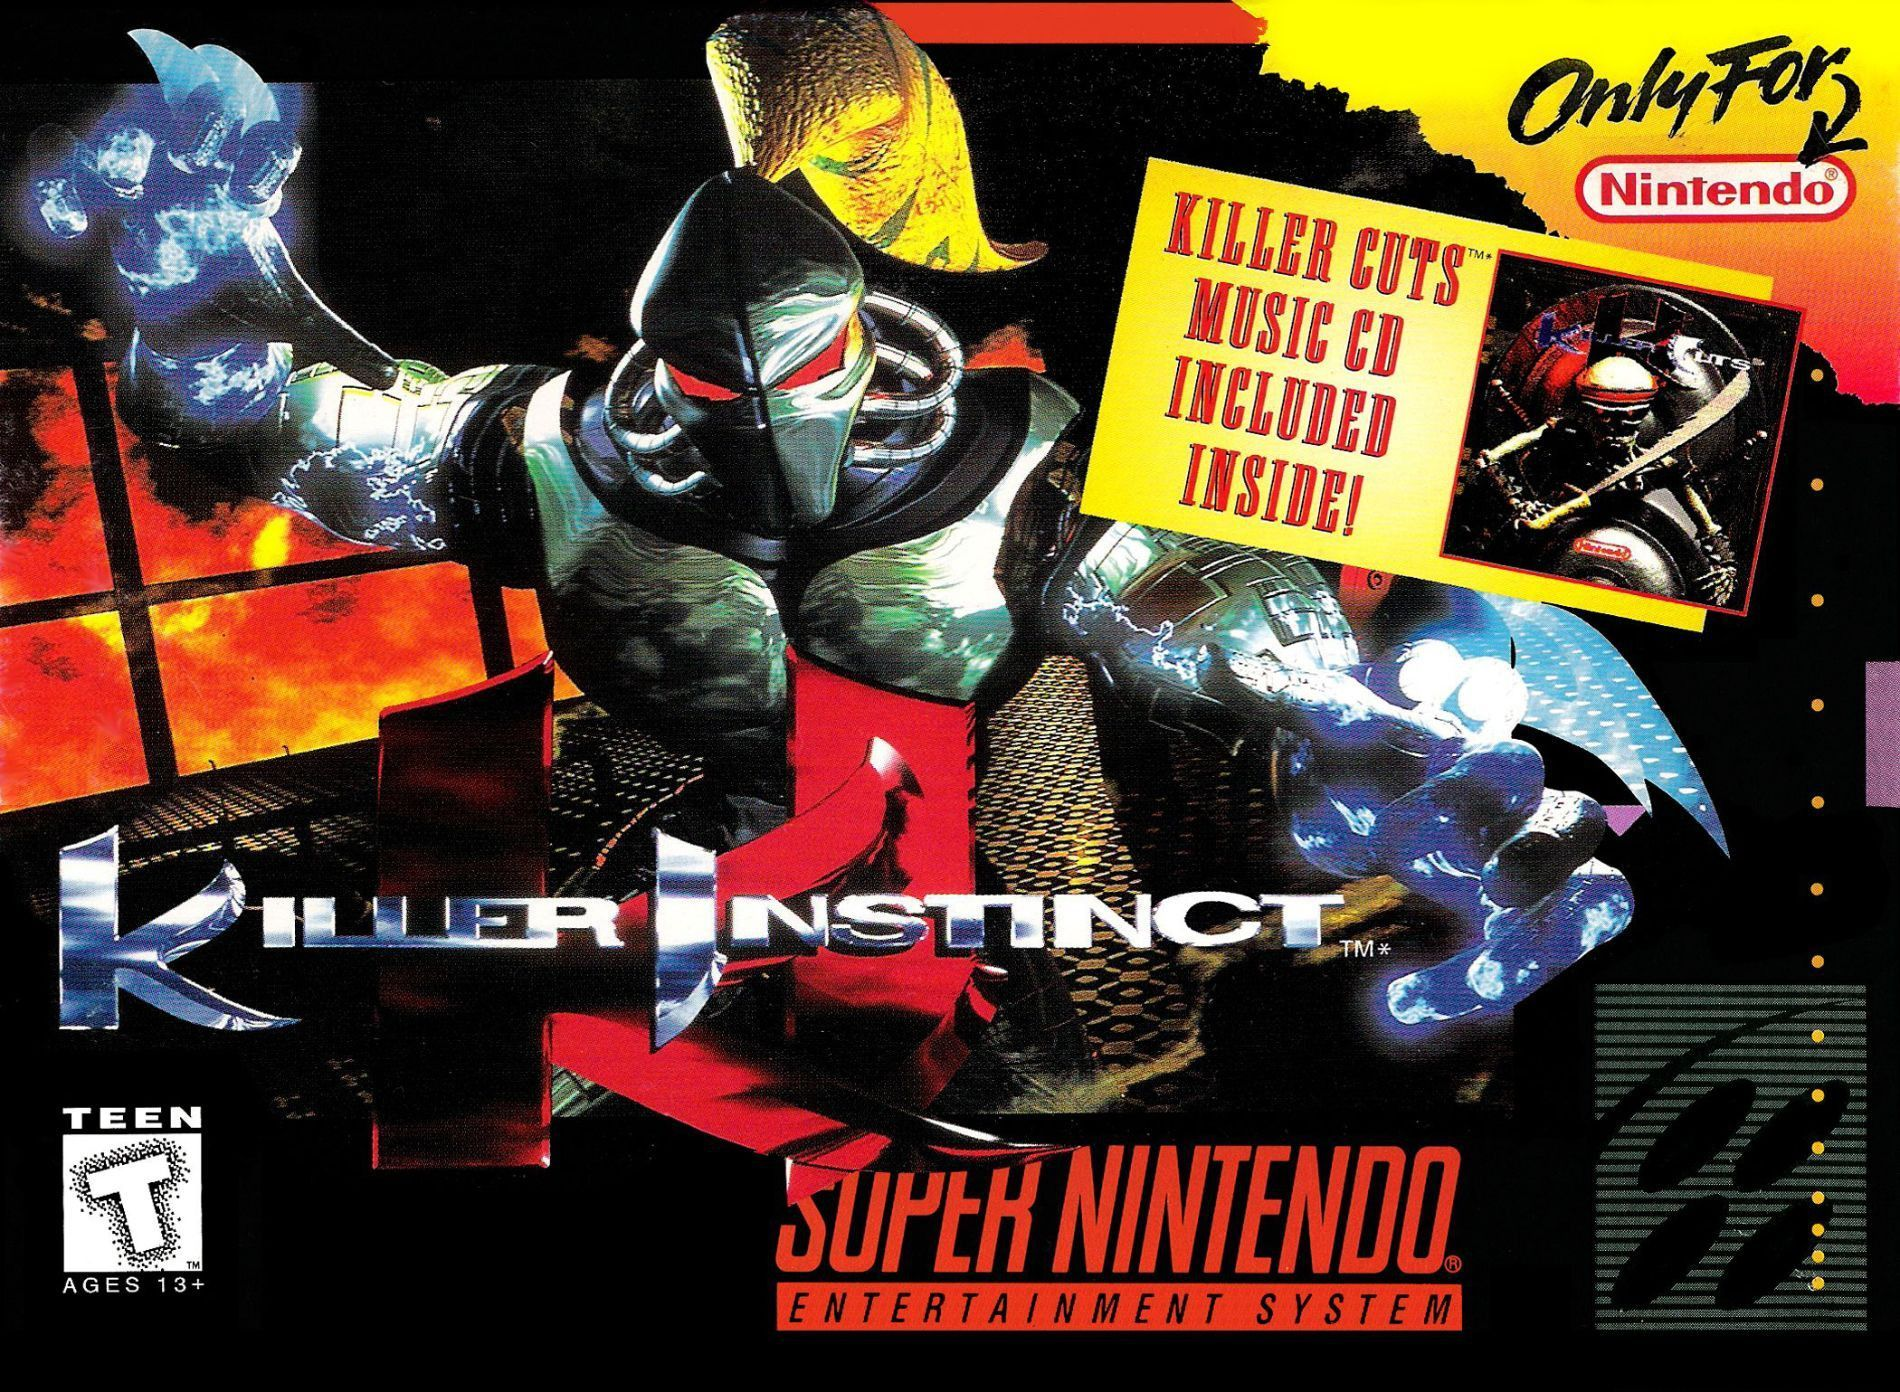 Title: Killer Instinct (Super Nintendo Entertainment System, 1995) UPC: 045496830458 Condition: Good - Pre-owned. Included: Cartridge only. Tested and in good condition. Cartridge Sold as pictured. Sh